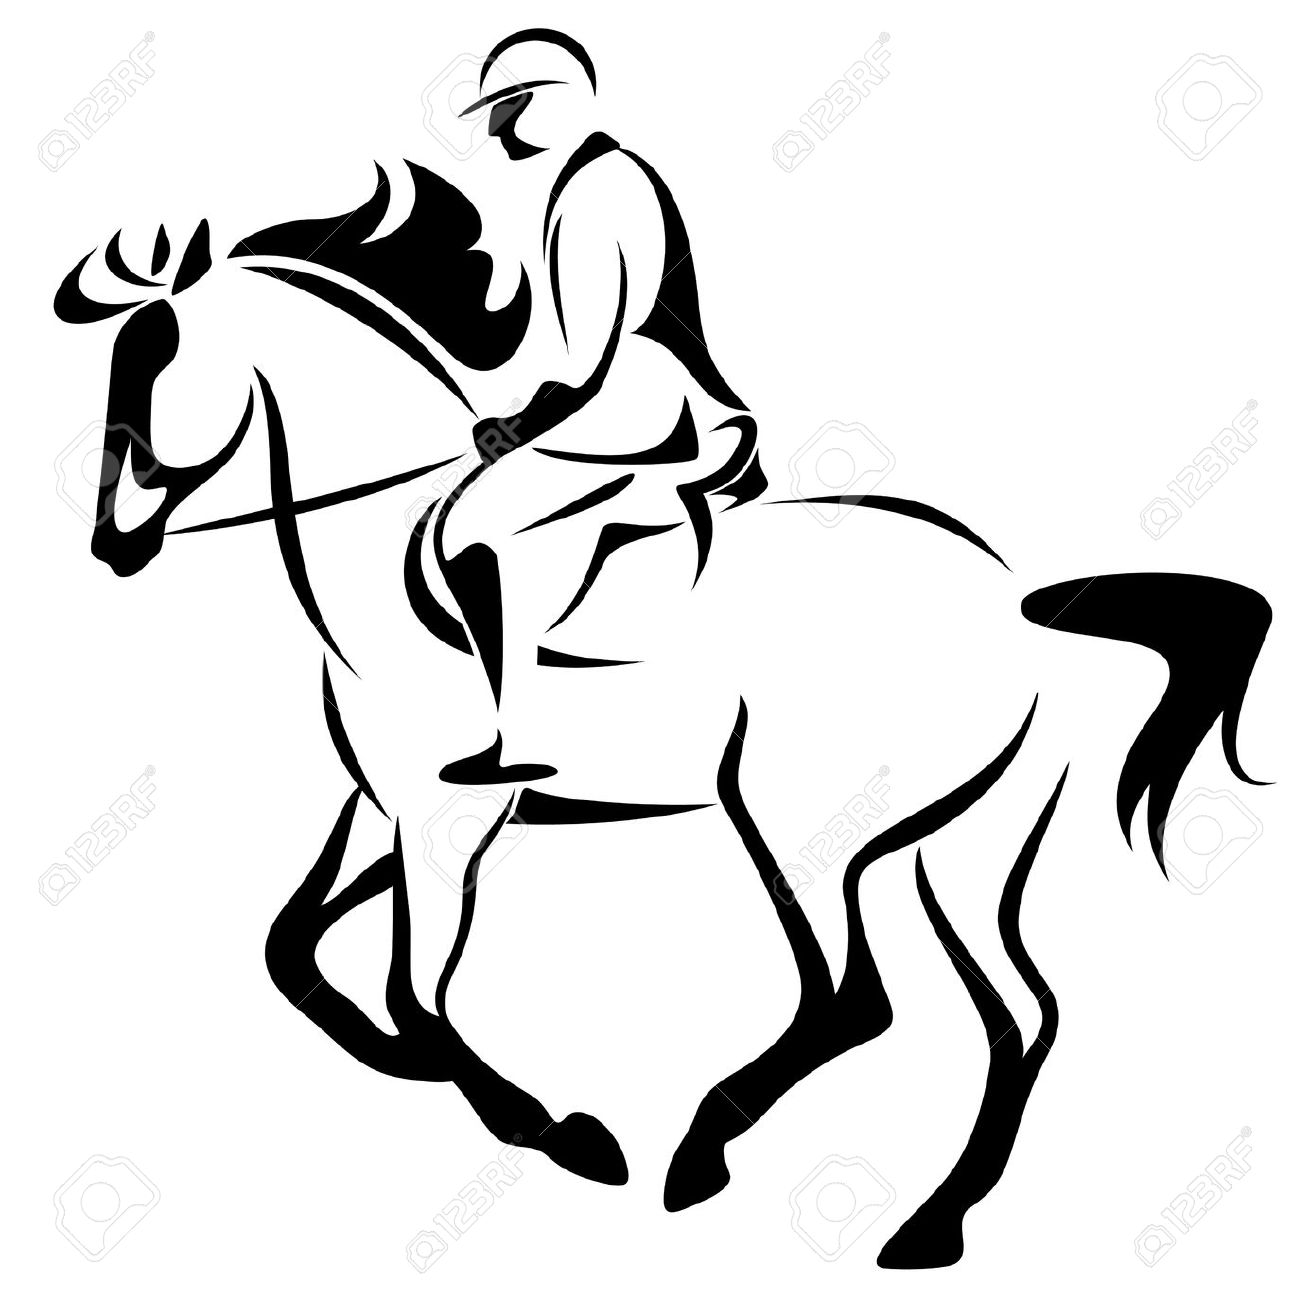 Horseback riding clipart english.